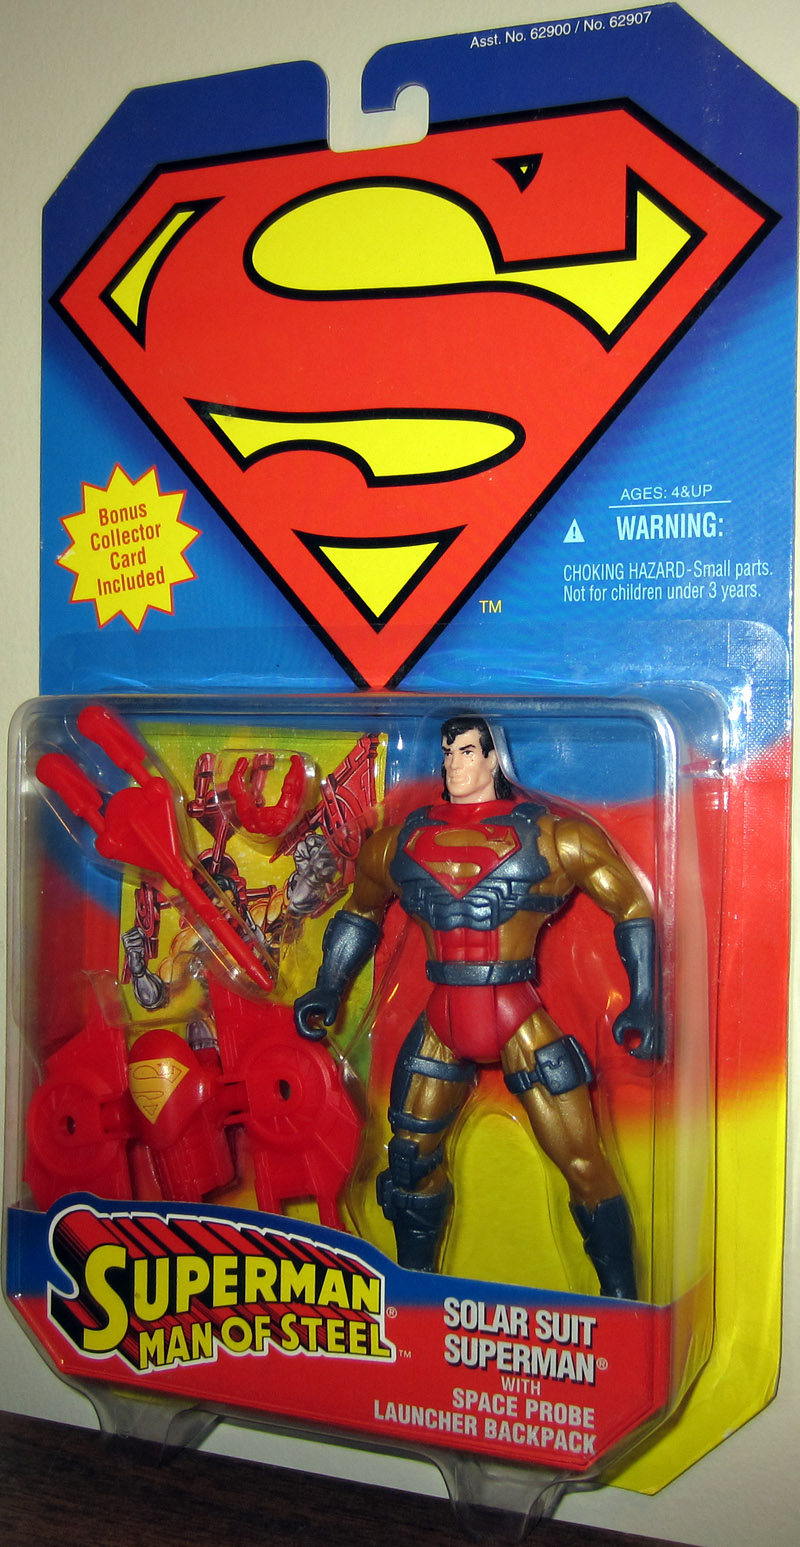 Solar Suit Superman